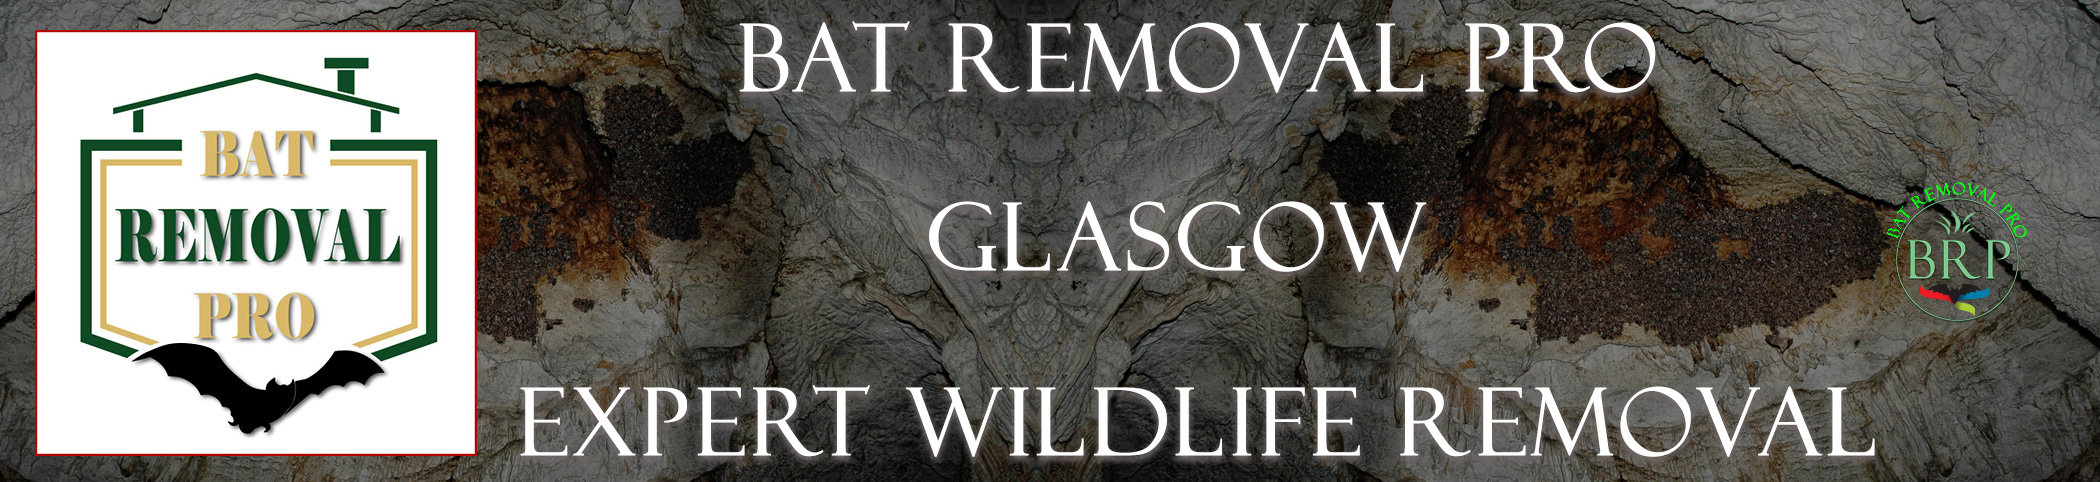 GLASGOW-bat-removal-at-bat-removal-pro-header-image